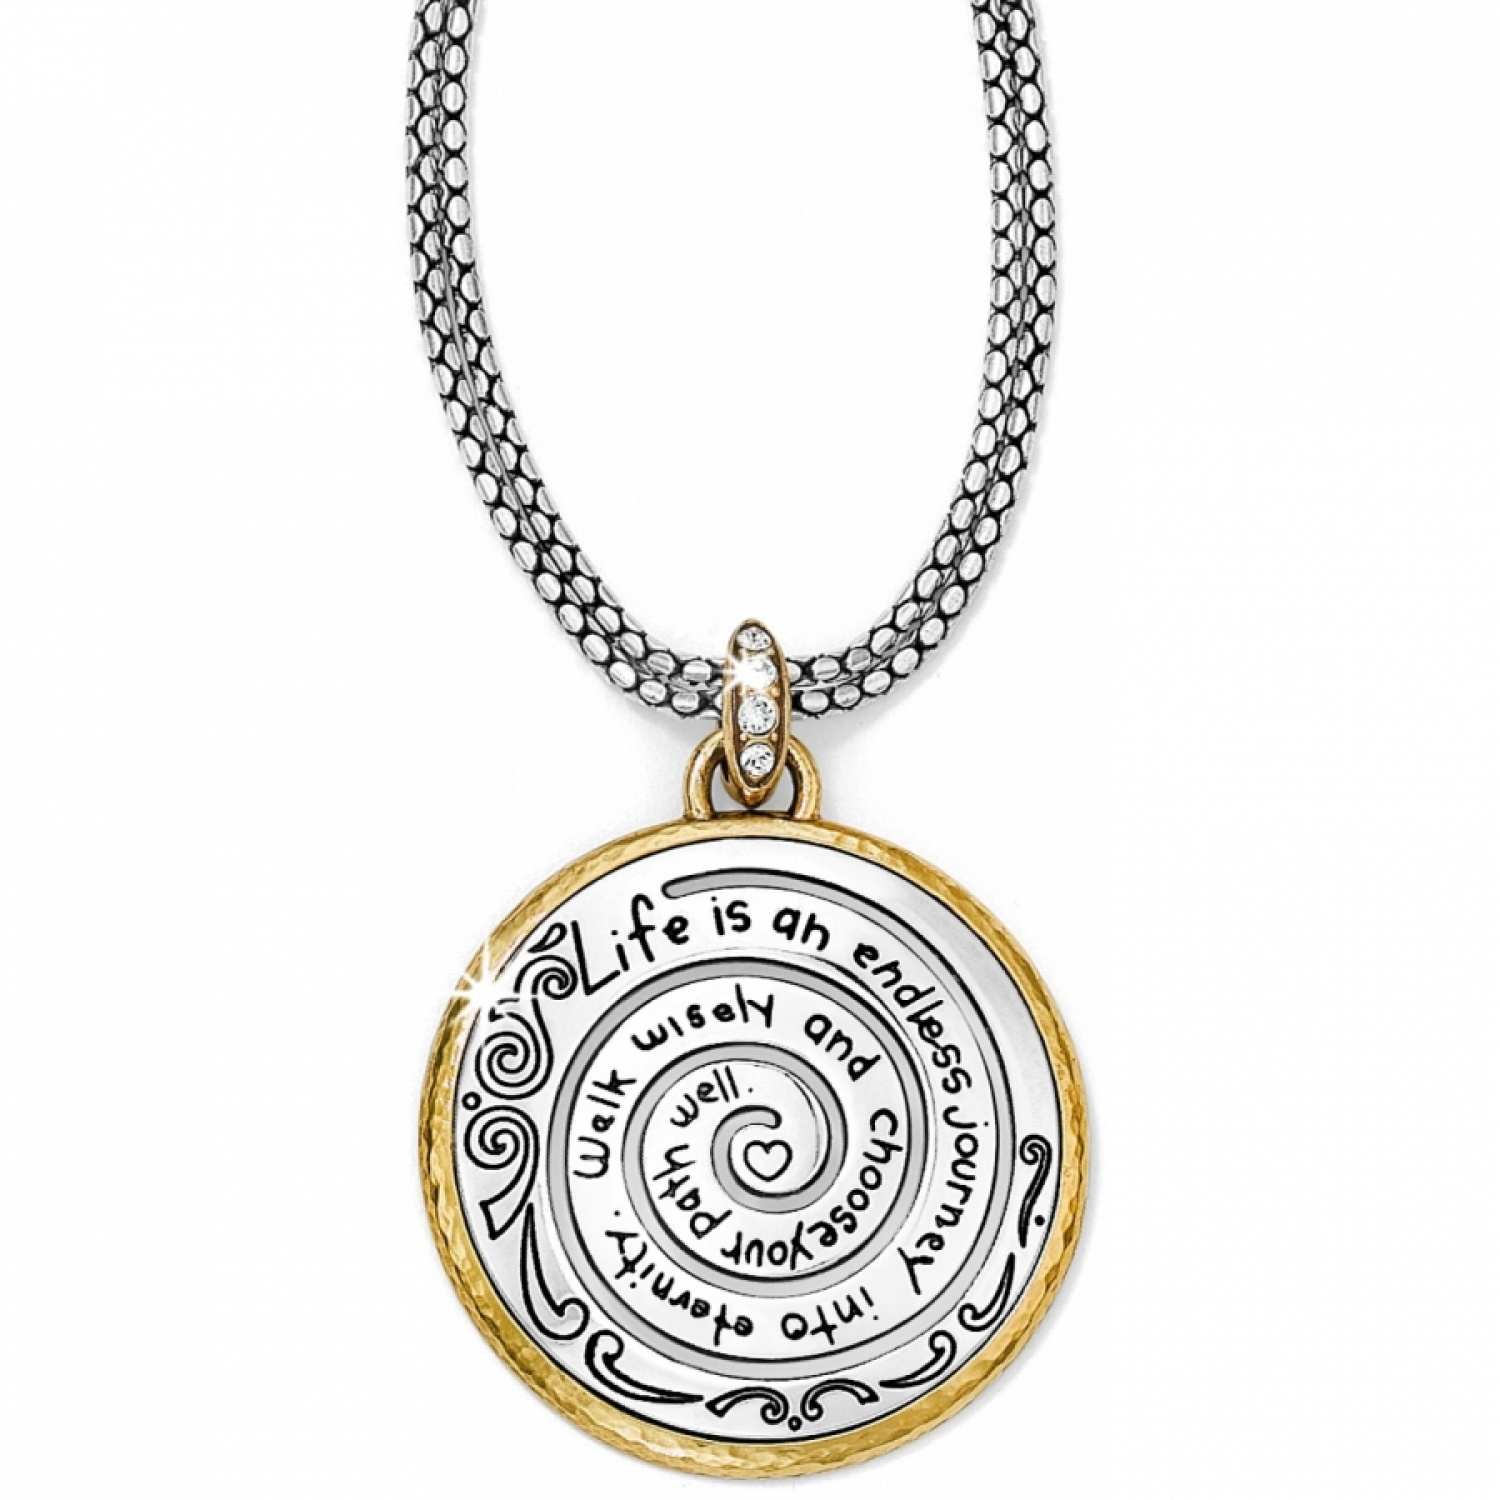 Journeyquest Journeyquest Convertible Necklace Necklaces